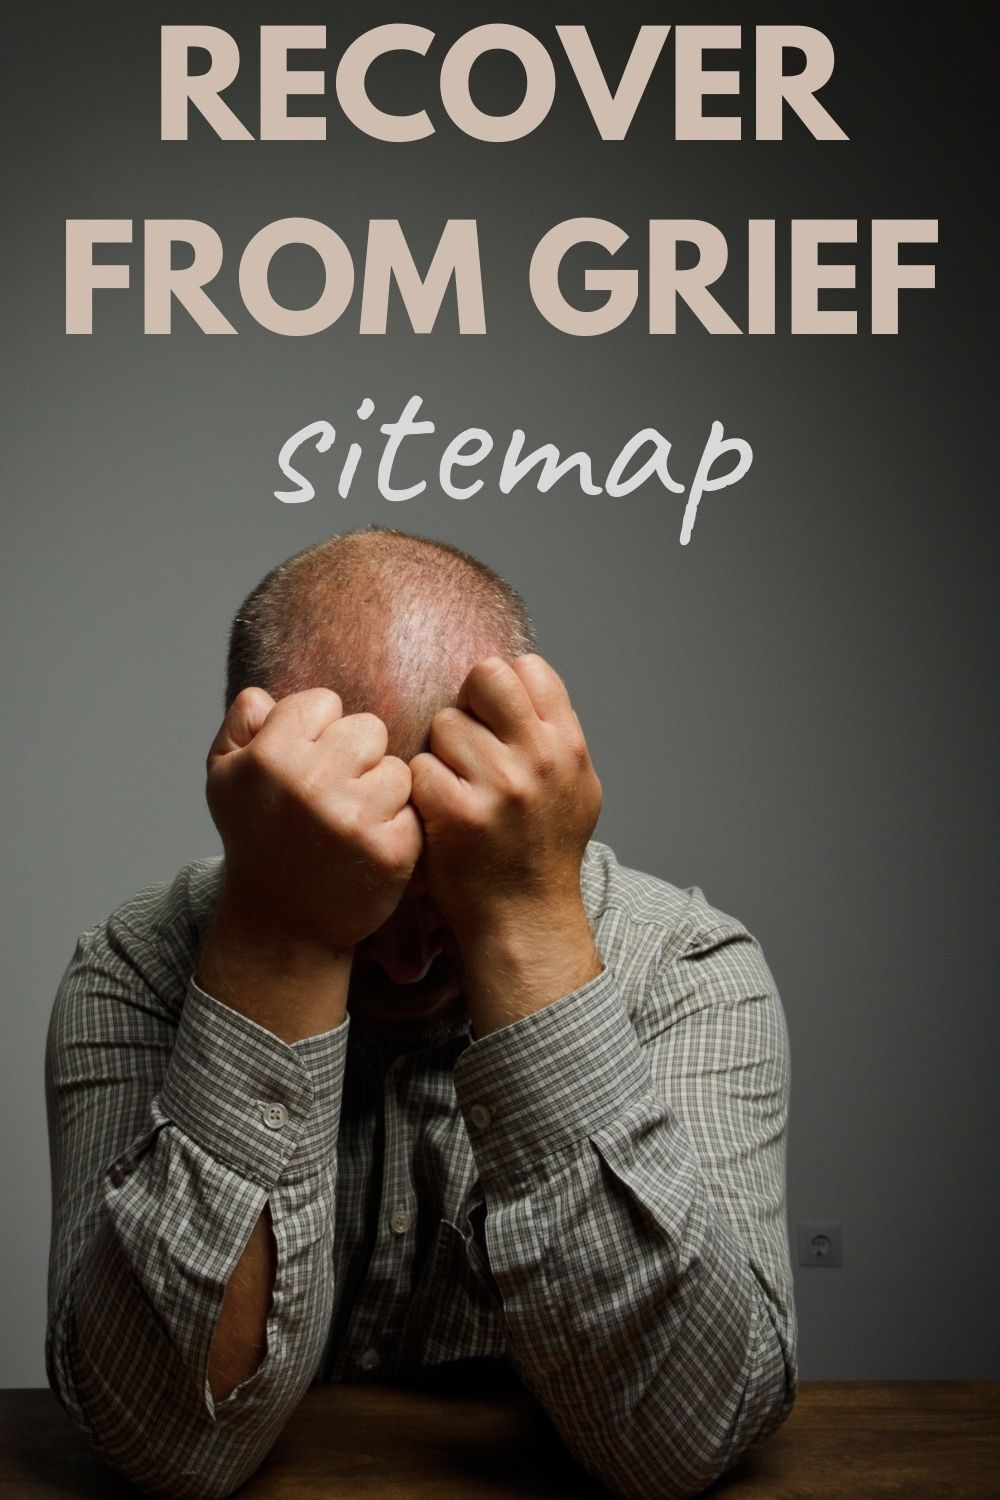 Recover from grief sitemap